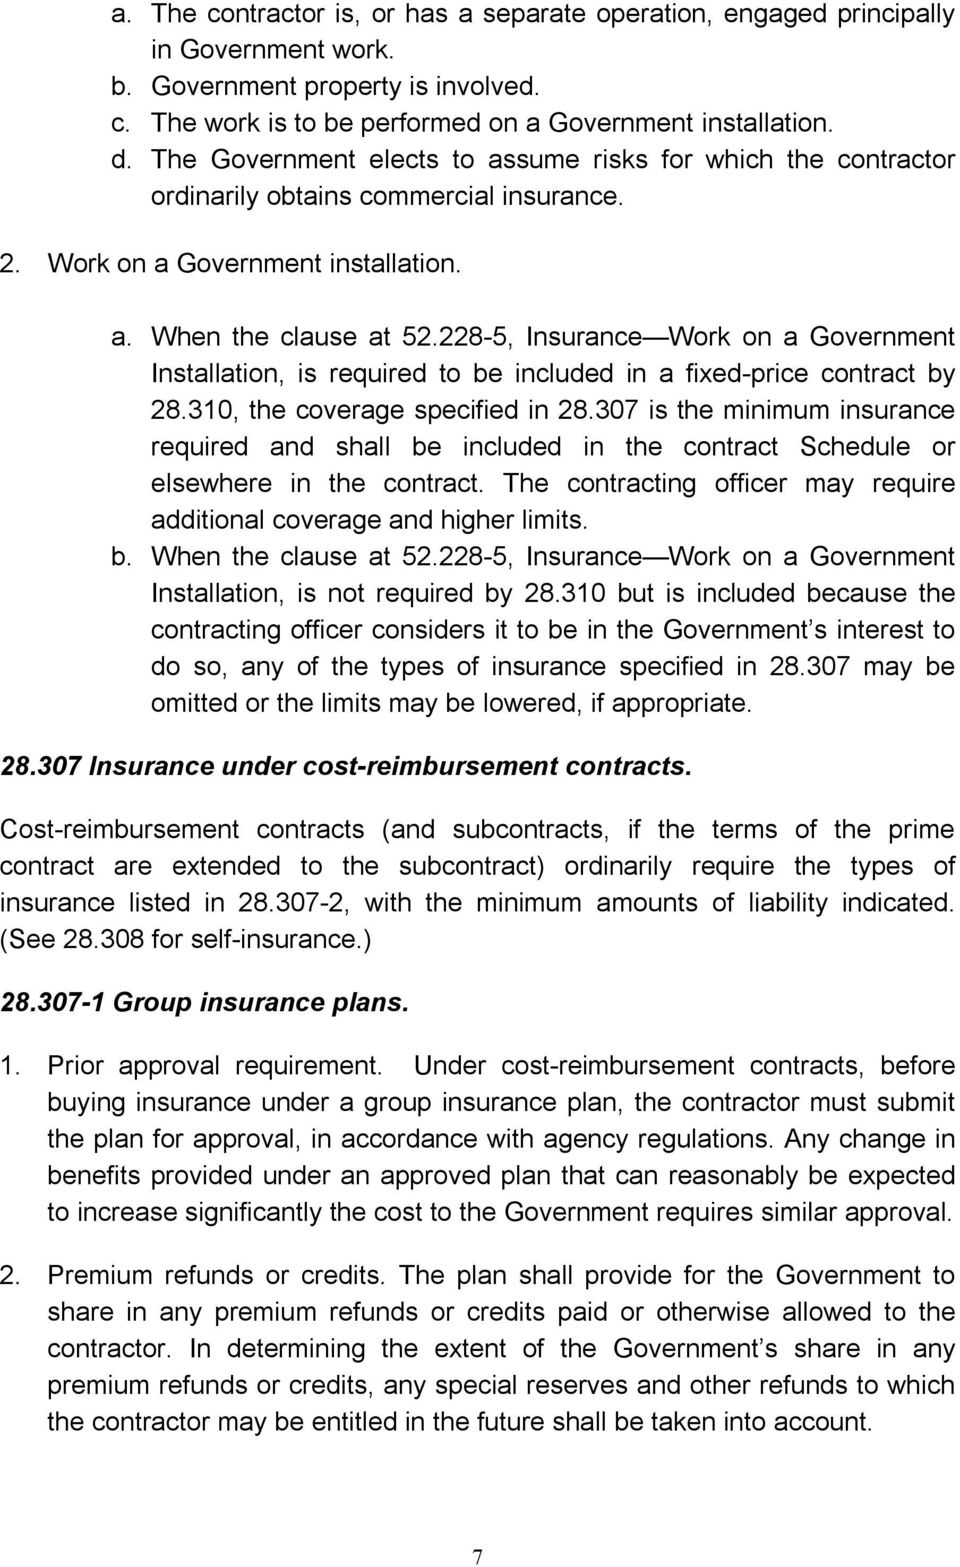 228 5, Insurance Work on a Government Installation, is required to be included in a fixed price contract by 28.310, the coverage specified in 28.